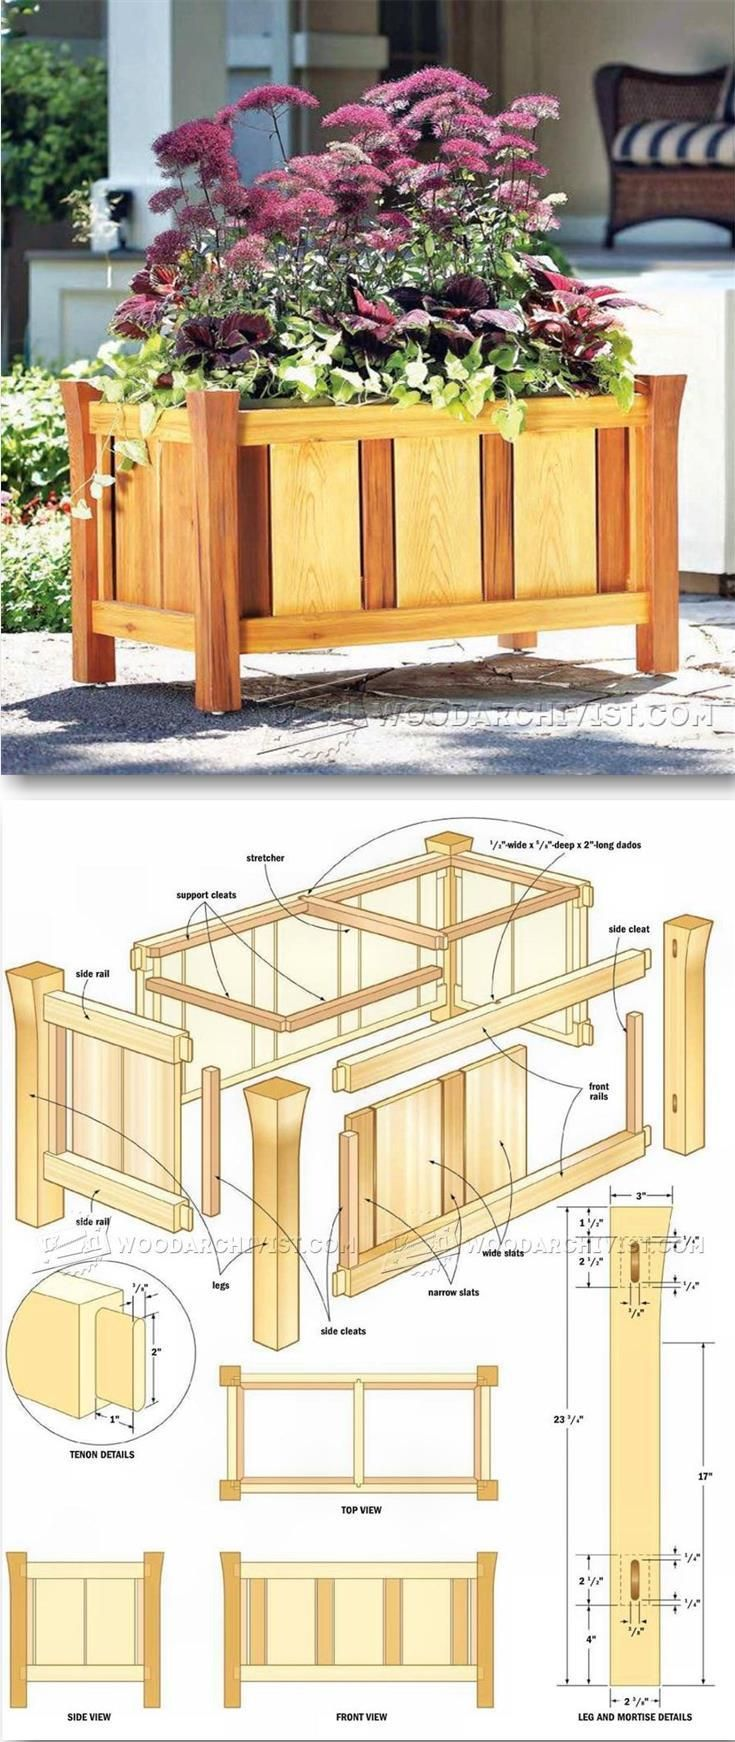 Mobilier Outdoor Élégant Versailles Planter Plans Outdoor Plans and Projects Of 36 Frais Mobilier Outdoor